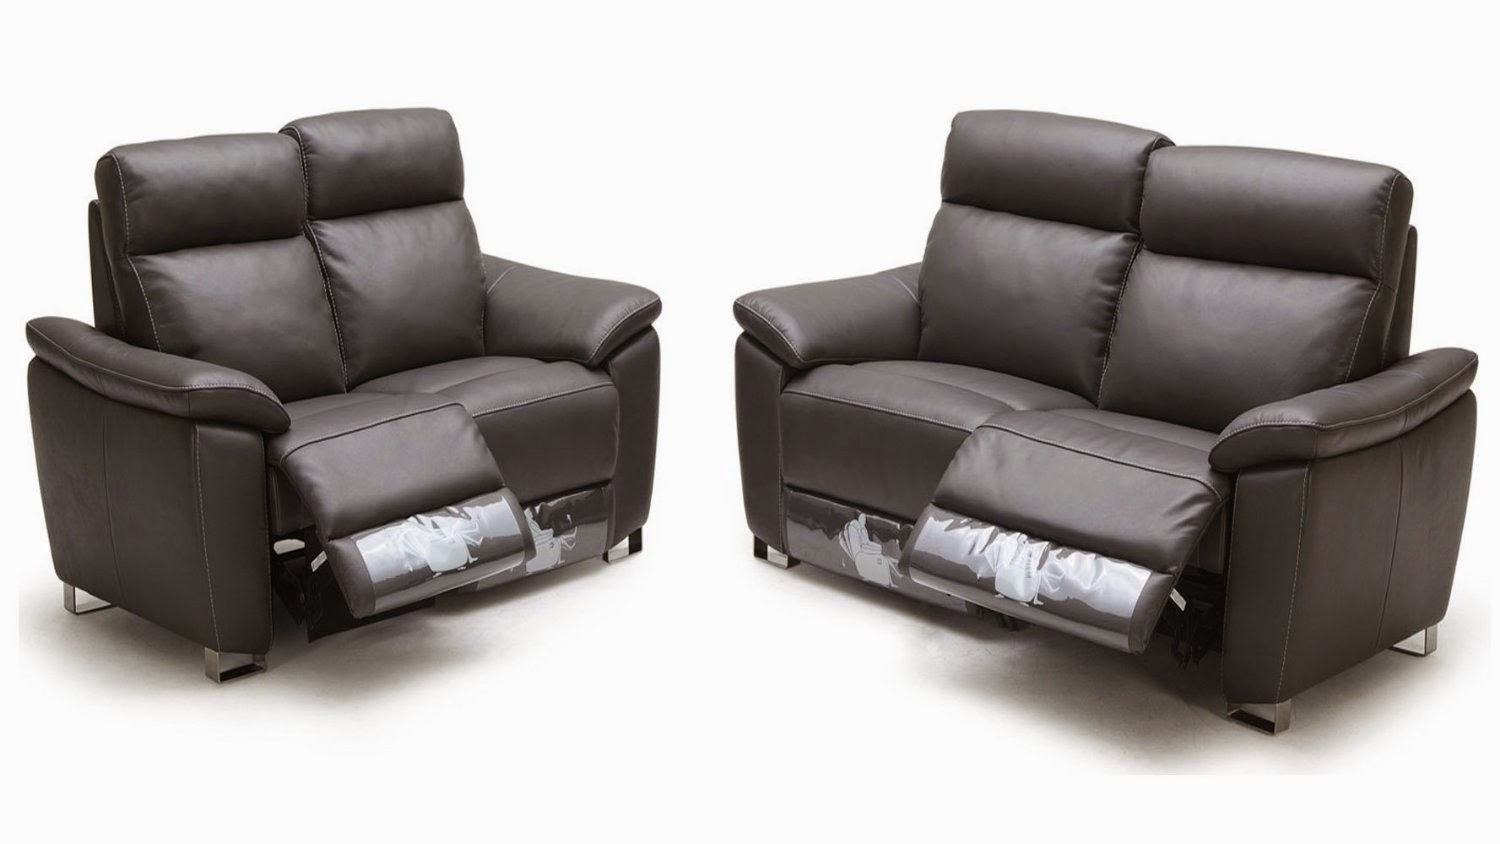 Best Reclining Sofa For The Money: Two Seater Reclining ...